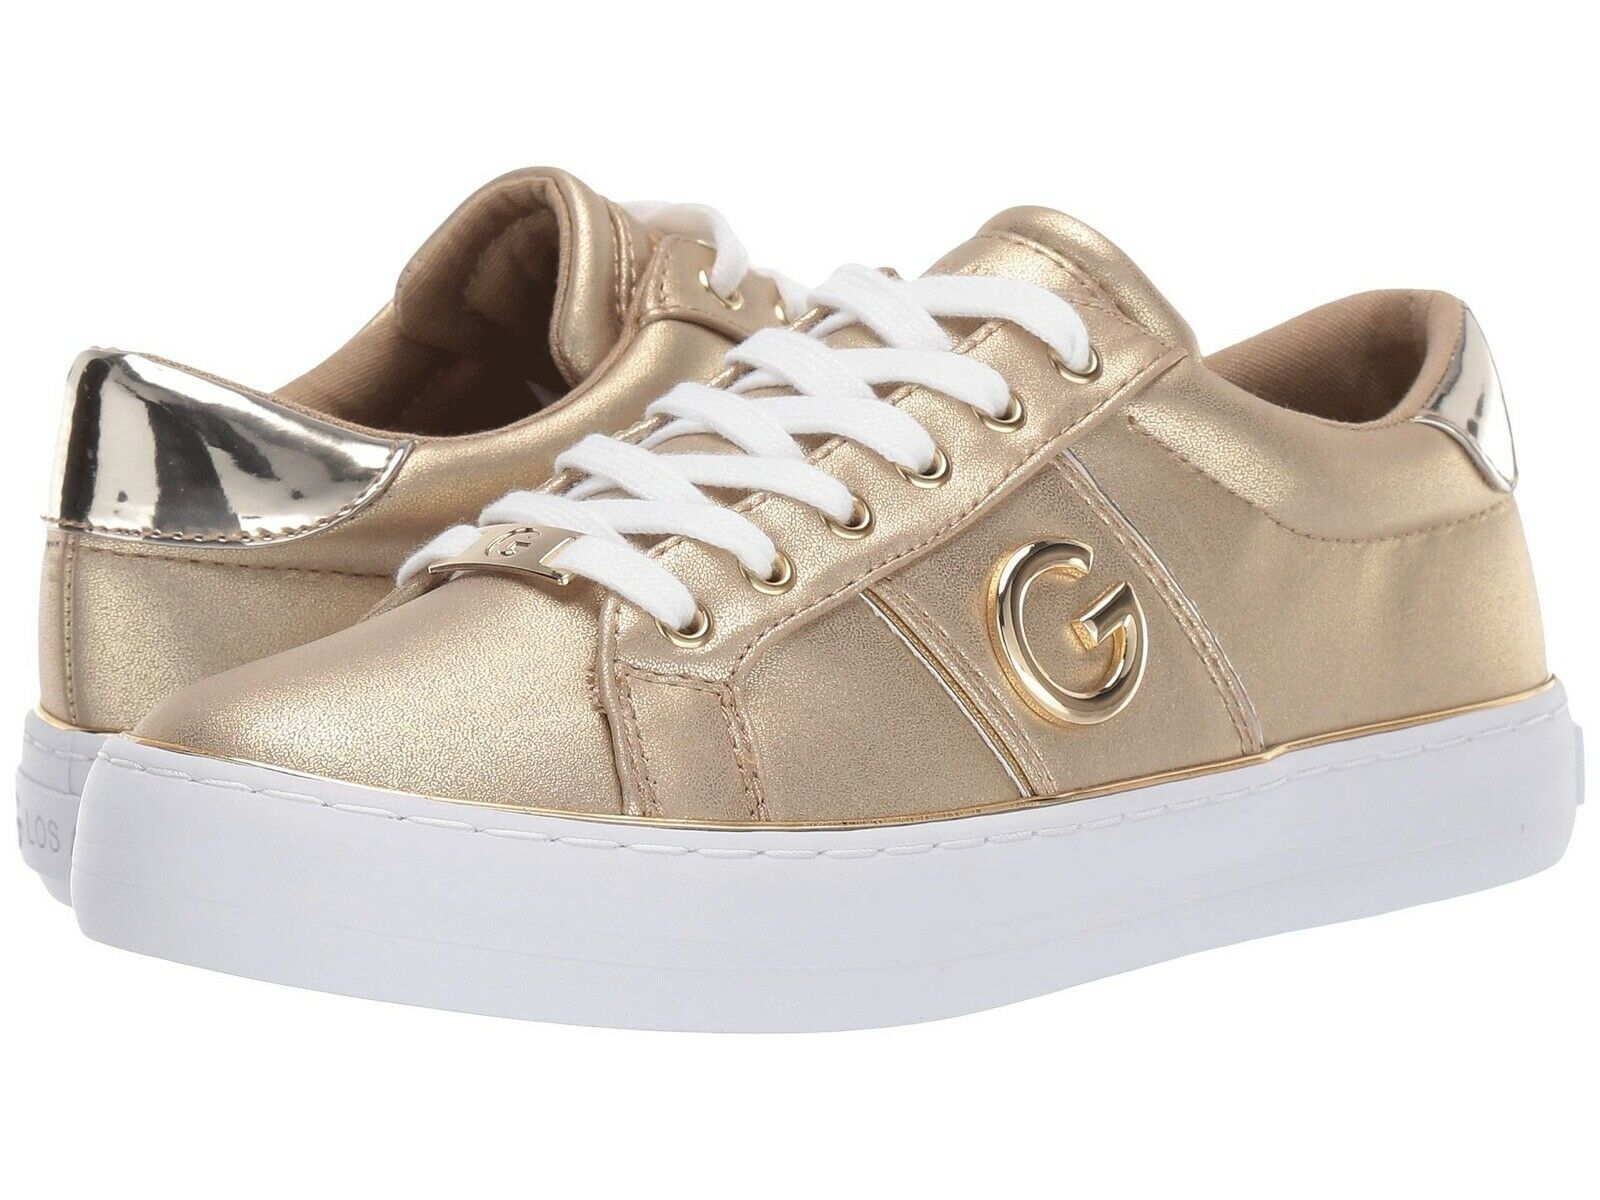 G by Guess GBG Women's Lace Up Leather Sneakers Shoes Grandyy